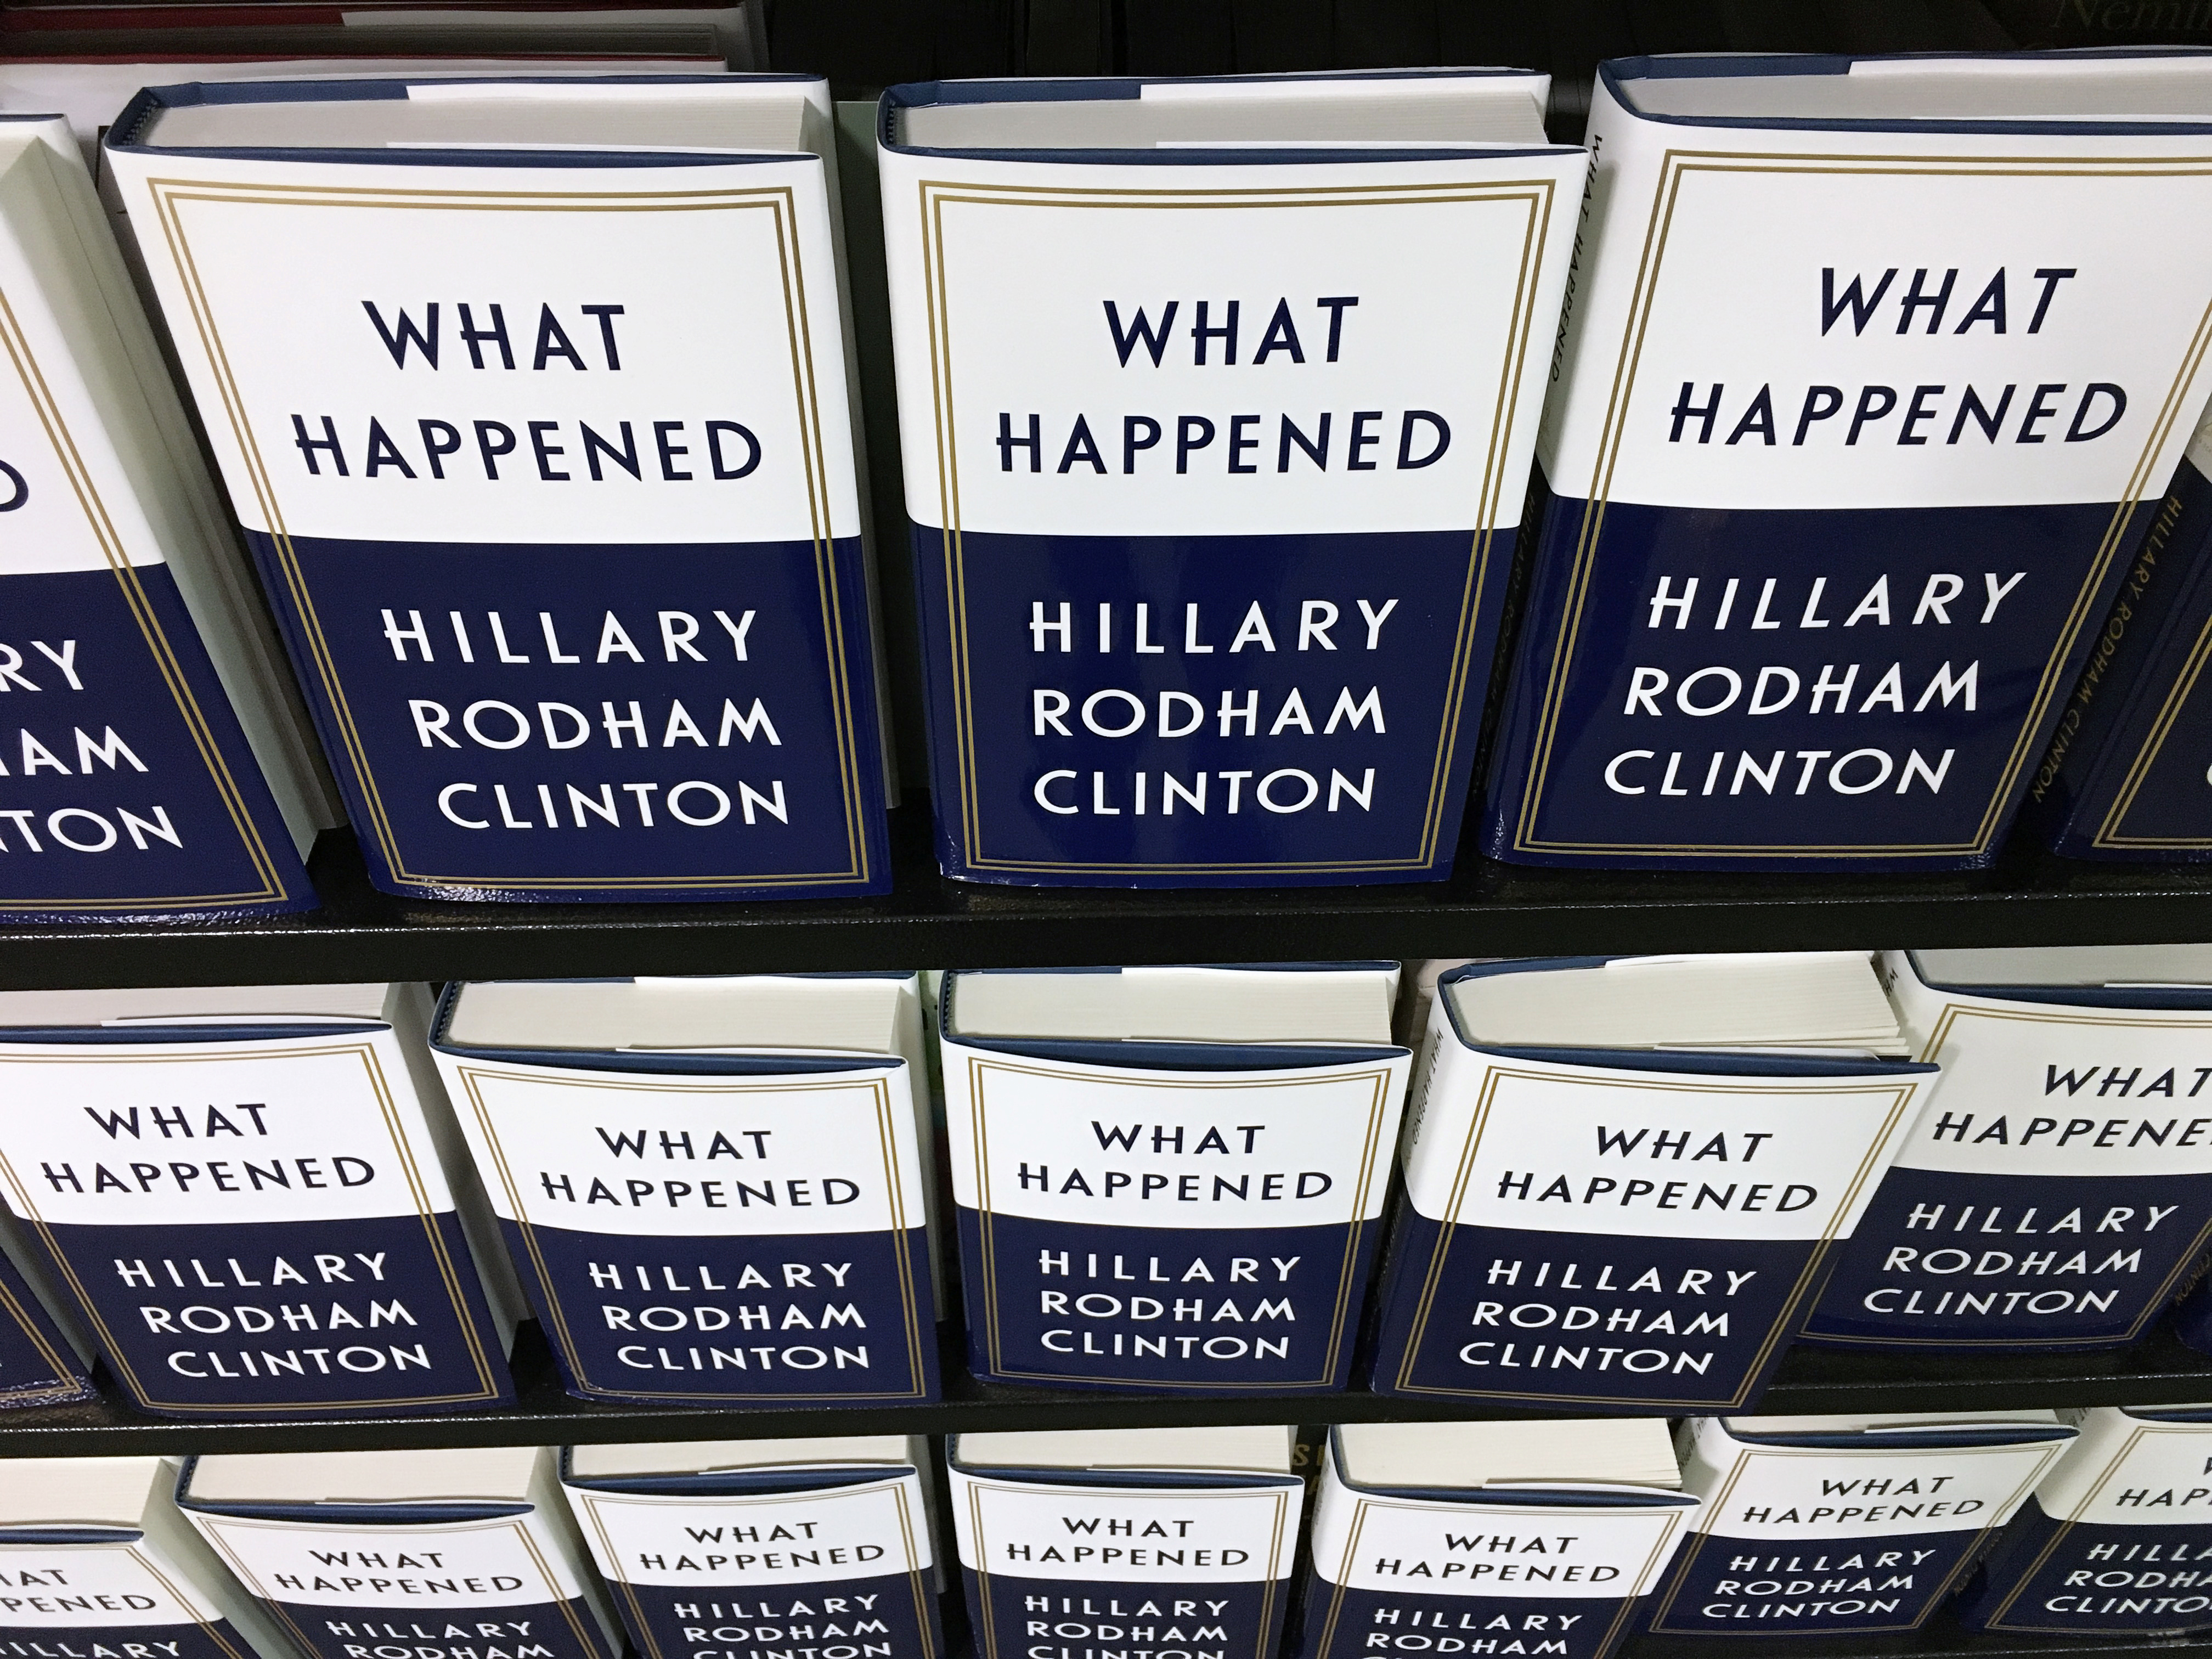 Reviews of Clinton's memoir were deleted for violating